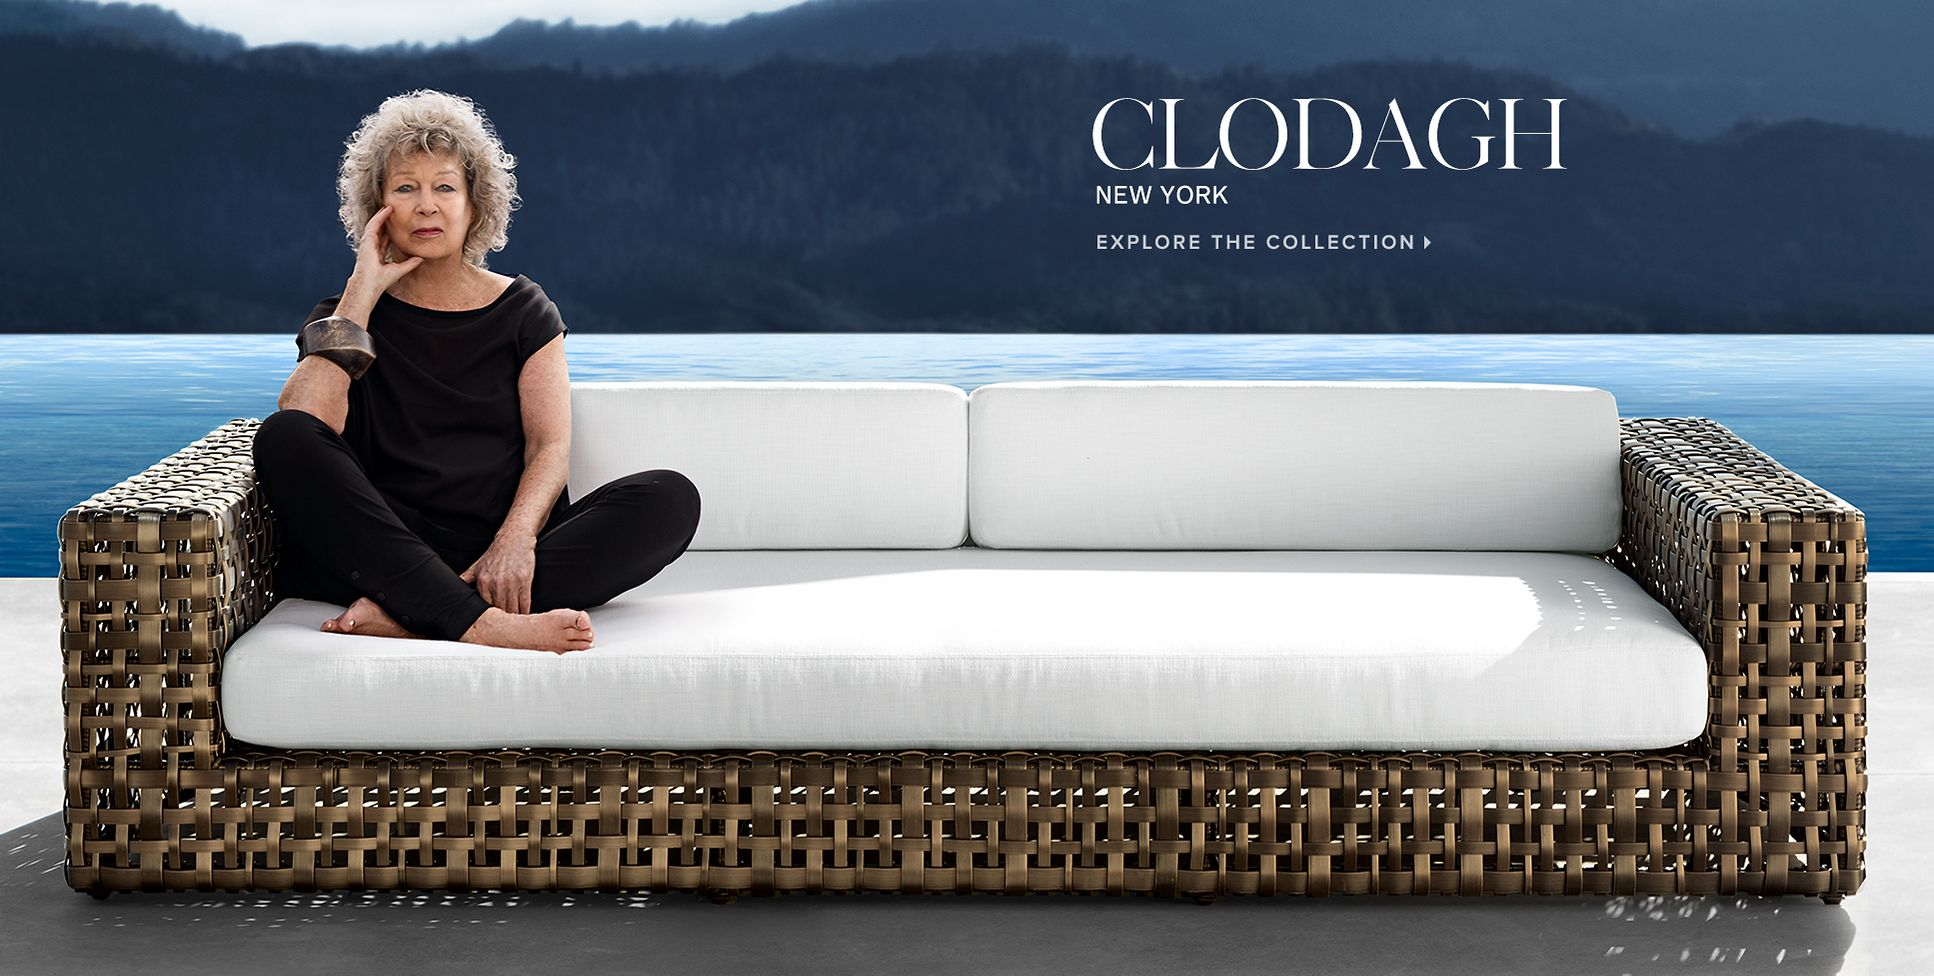 Clodagh - Explore the Collection